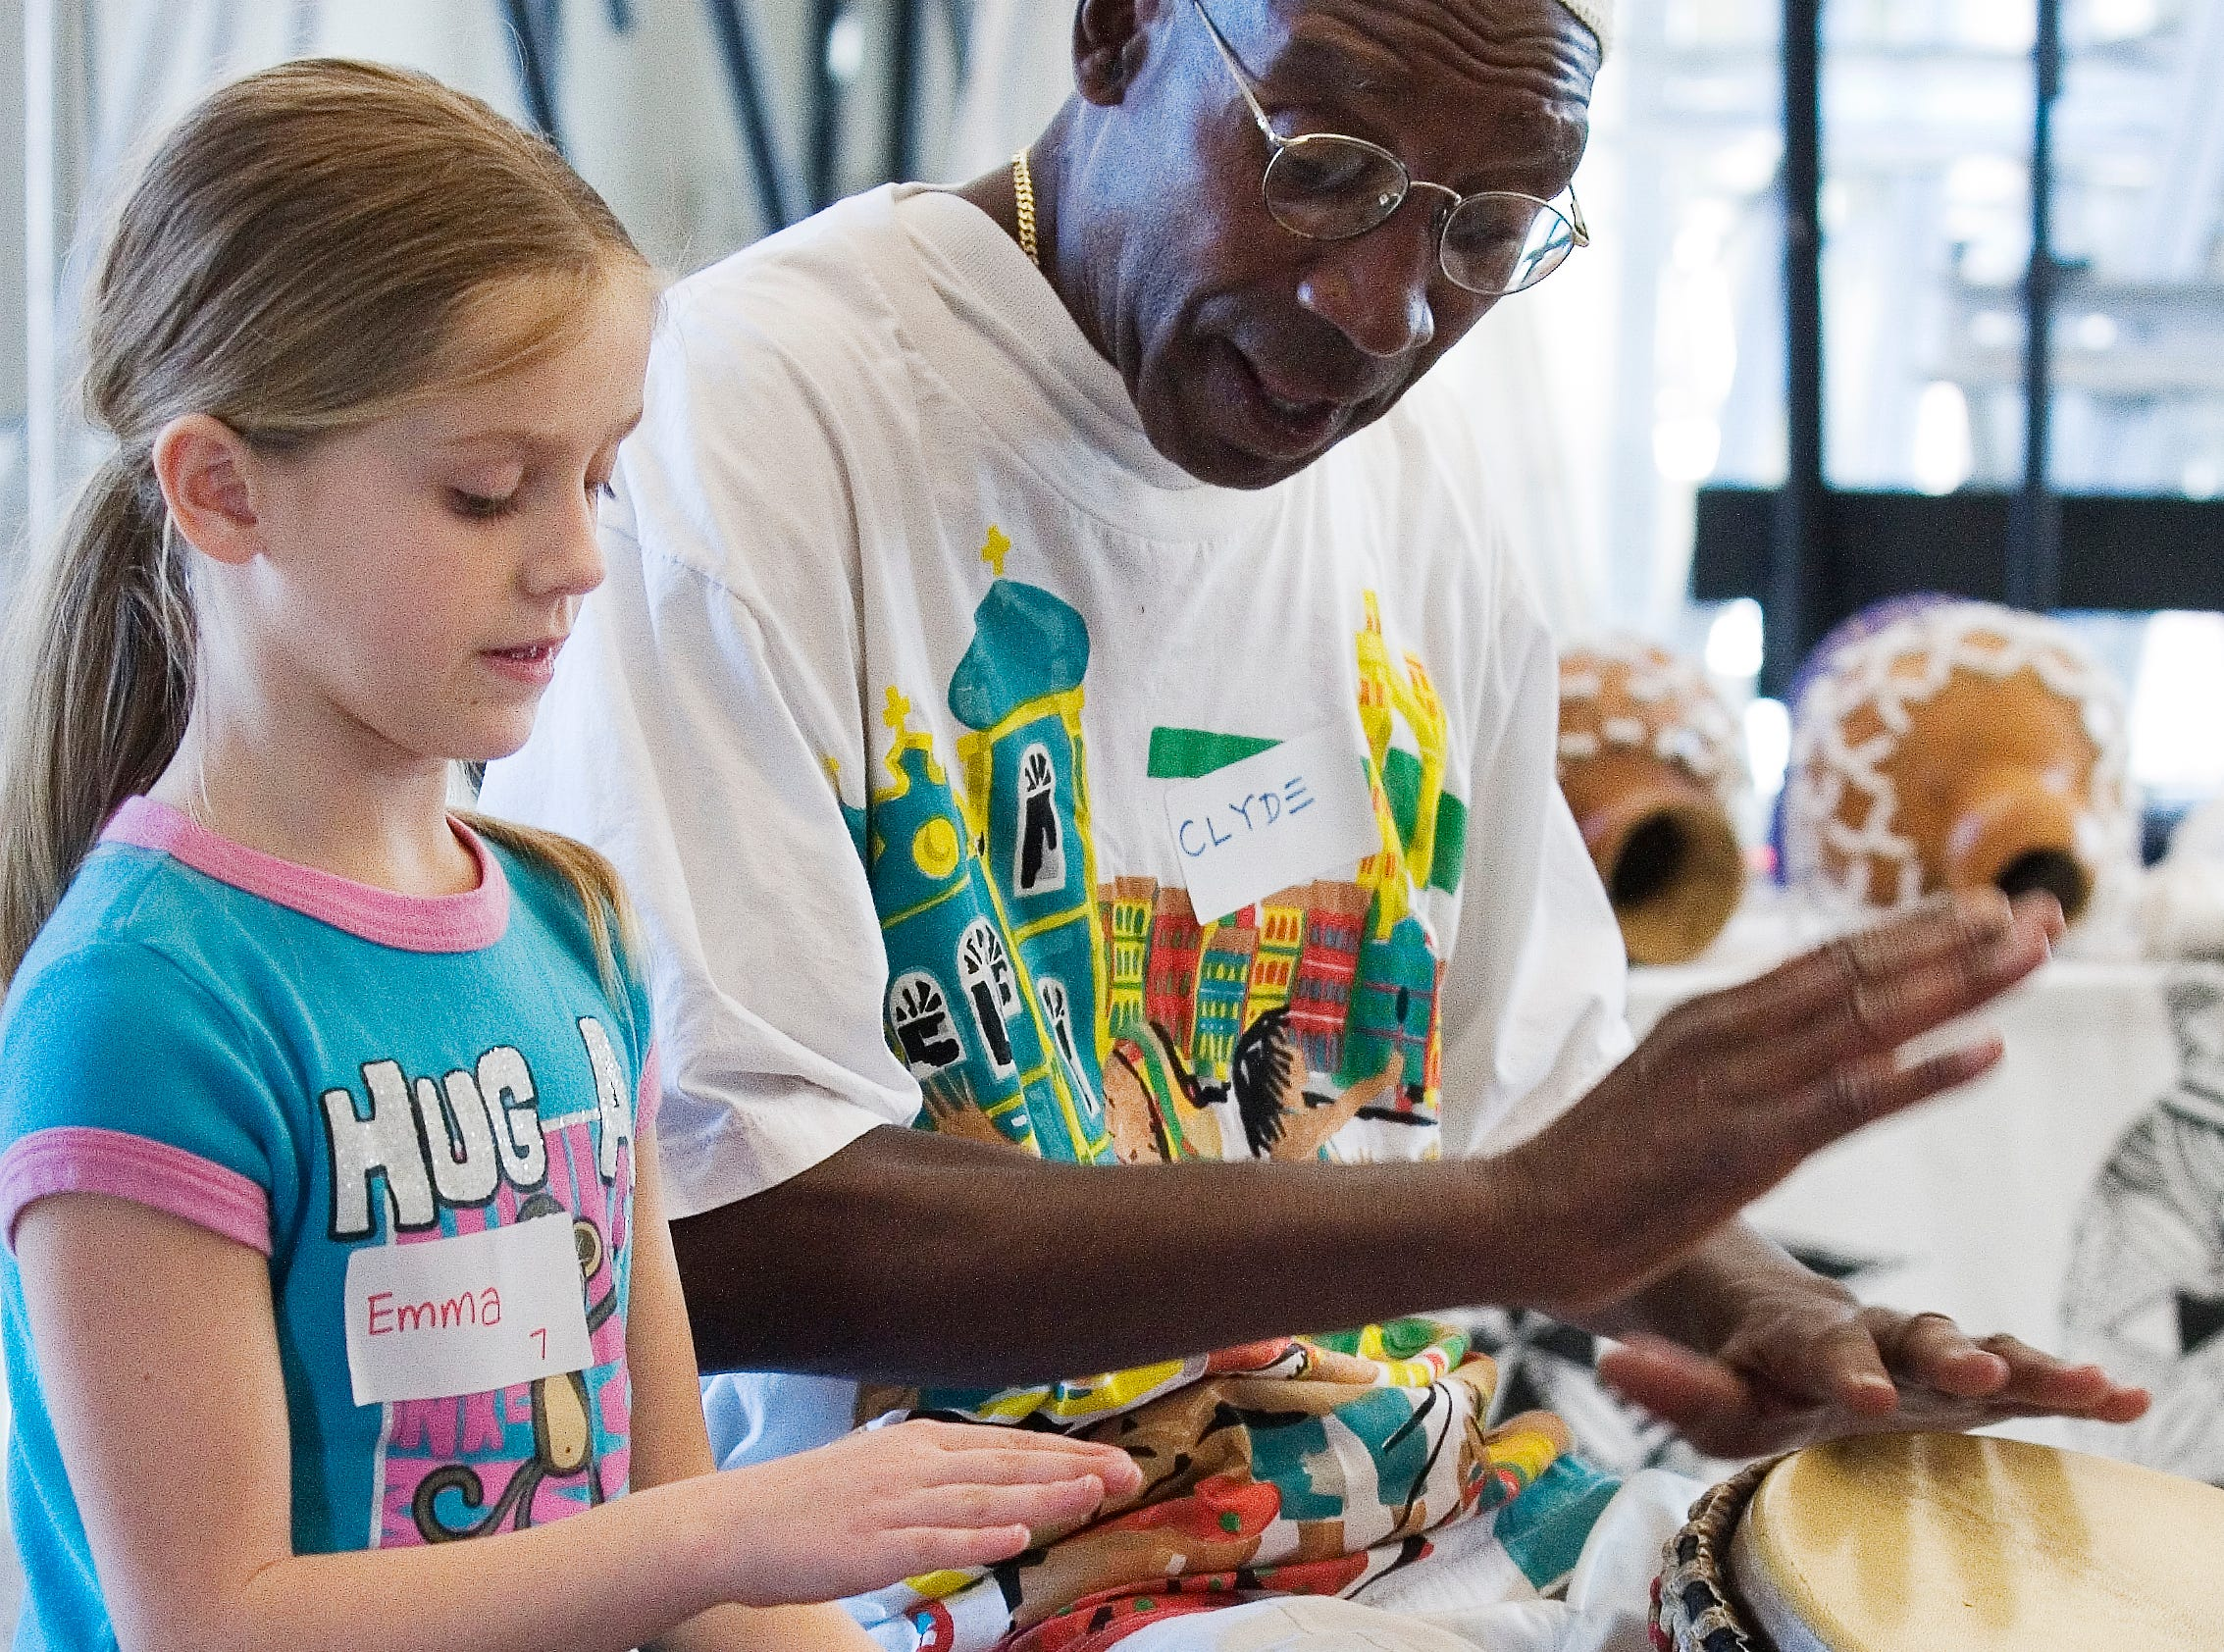 2009: Emma Brown, 7, plays the drum with encouragement form Clyde Morgan, associated professor of dance at SUNY Brockport,  during 24th Annual Making Real the Dream celebration at 171 Cedar Arts Center in Corning Monday.